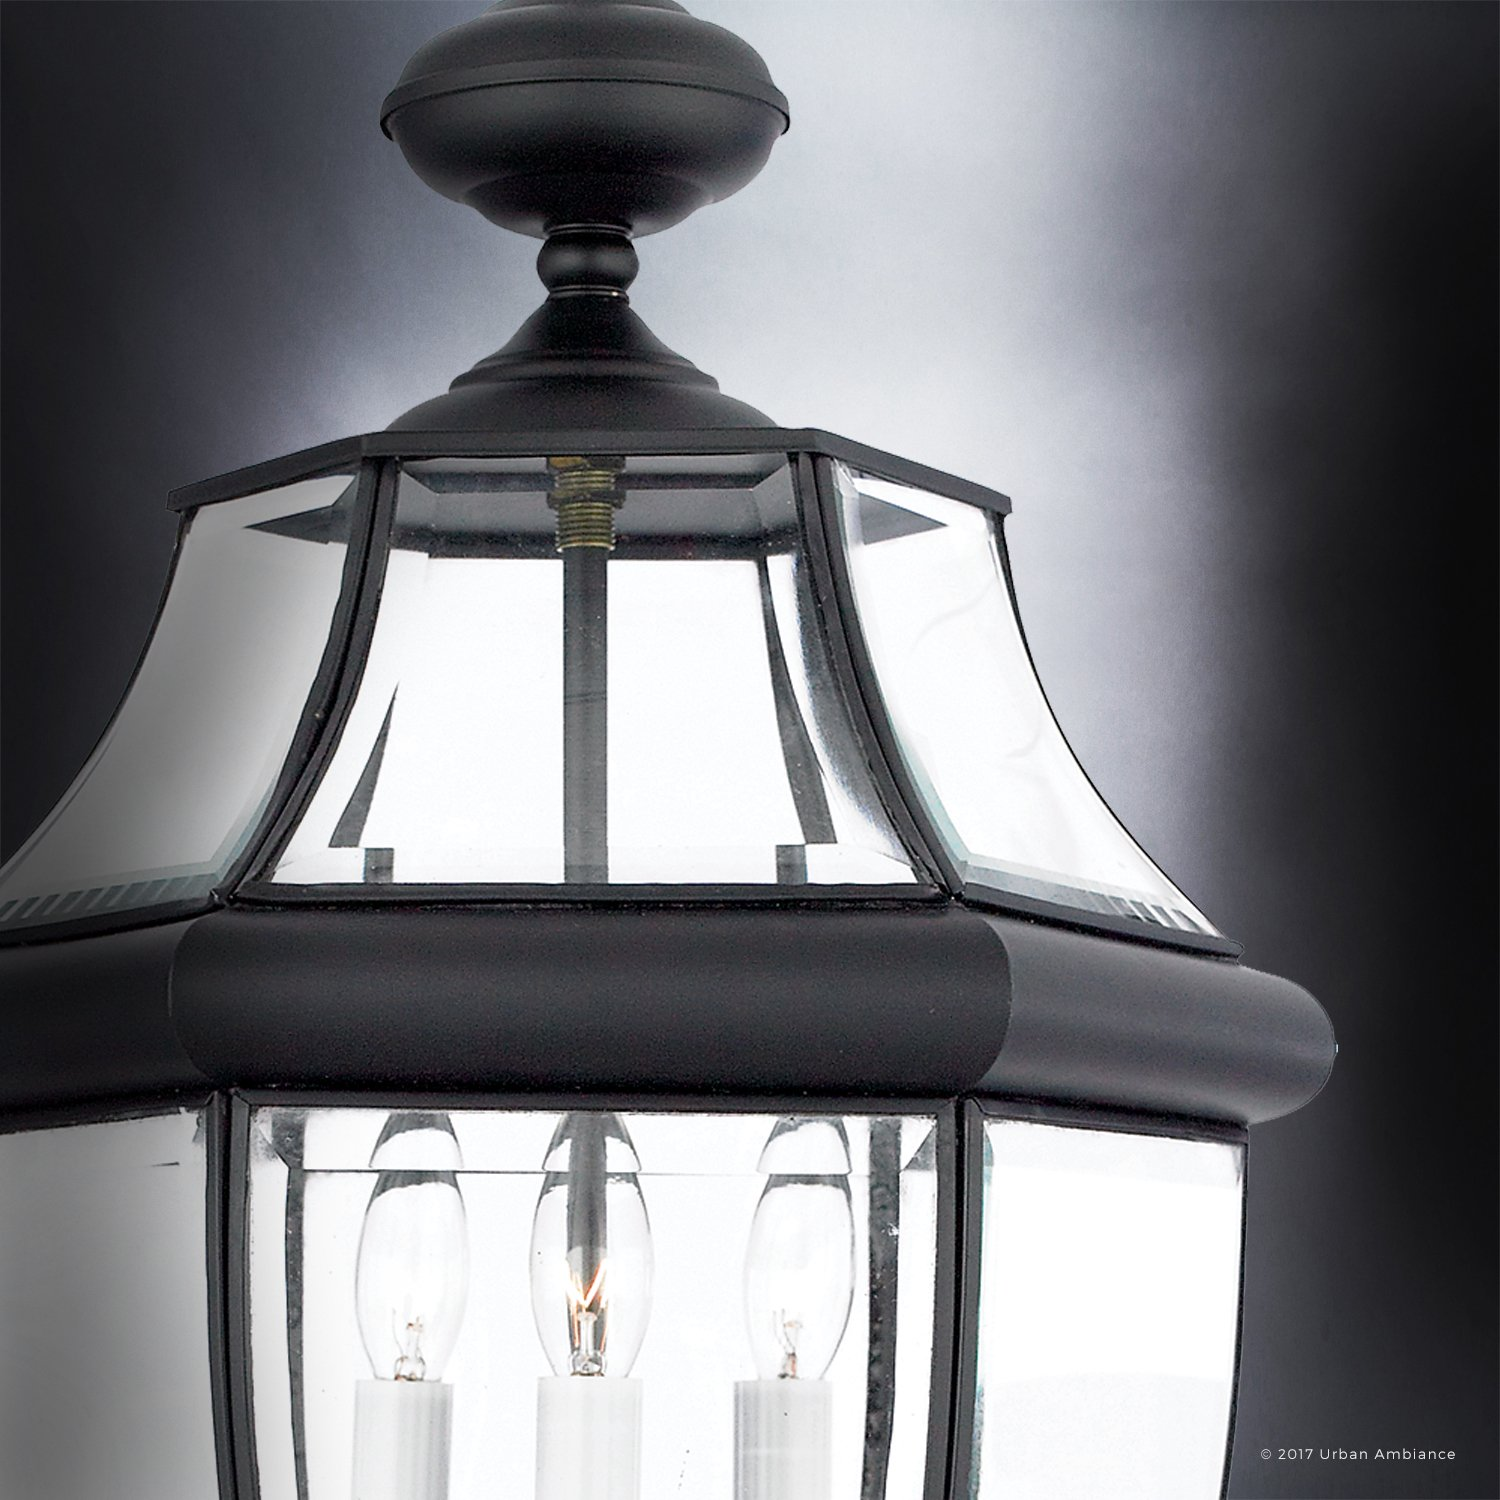 Luxury Colonial Outdoor Post Light, Large Size: 23''H x 12.5''W, with Tudor Style Elements, Versatile Design, High-End Black Silk Finish and Beveled Glass, UQL1150 by Urban Ambiance by Urban Ambiance (Image #5)